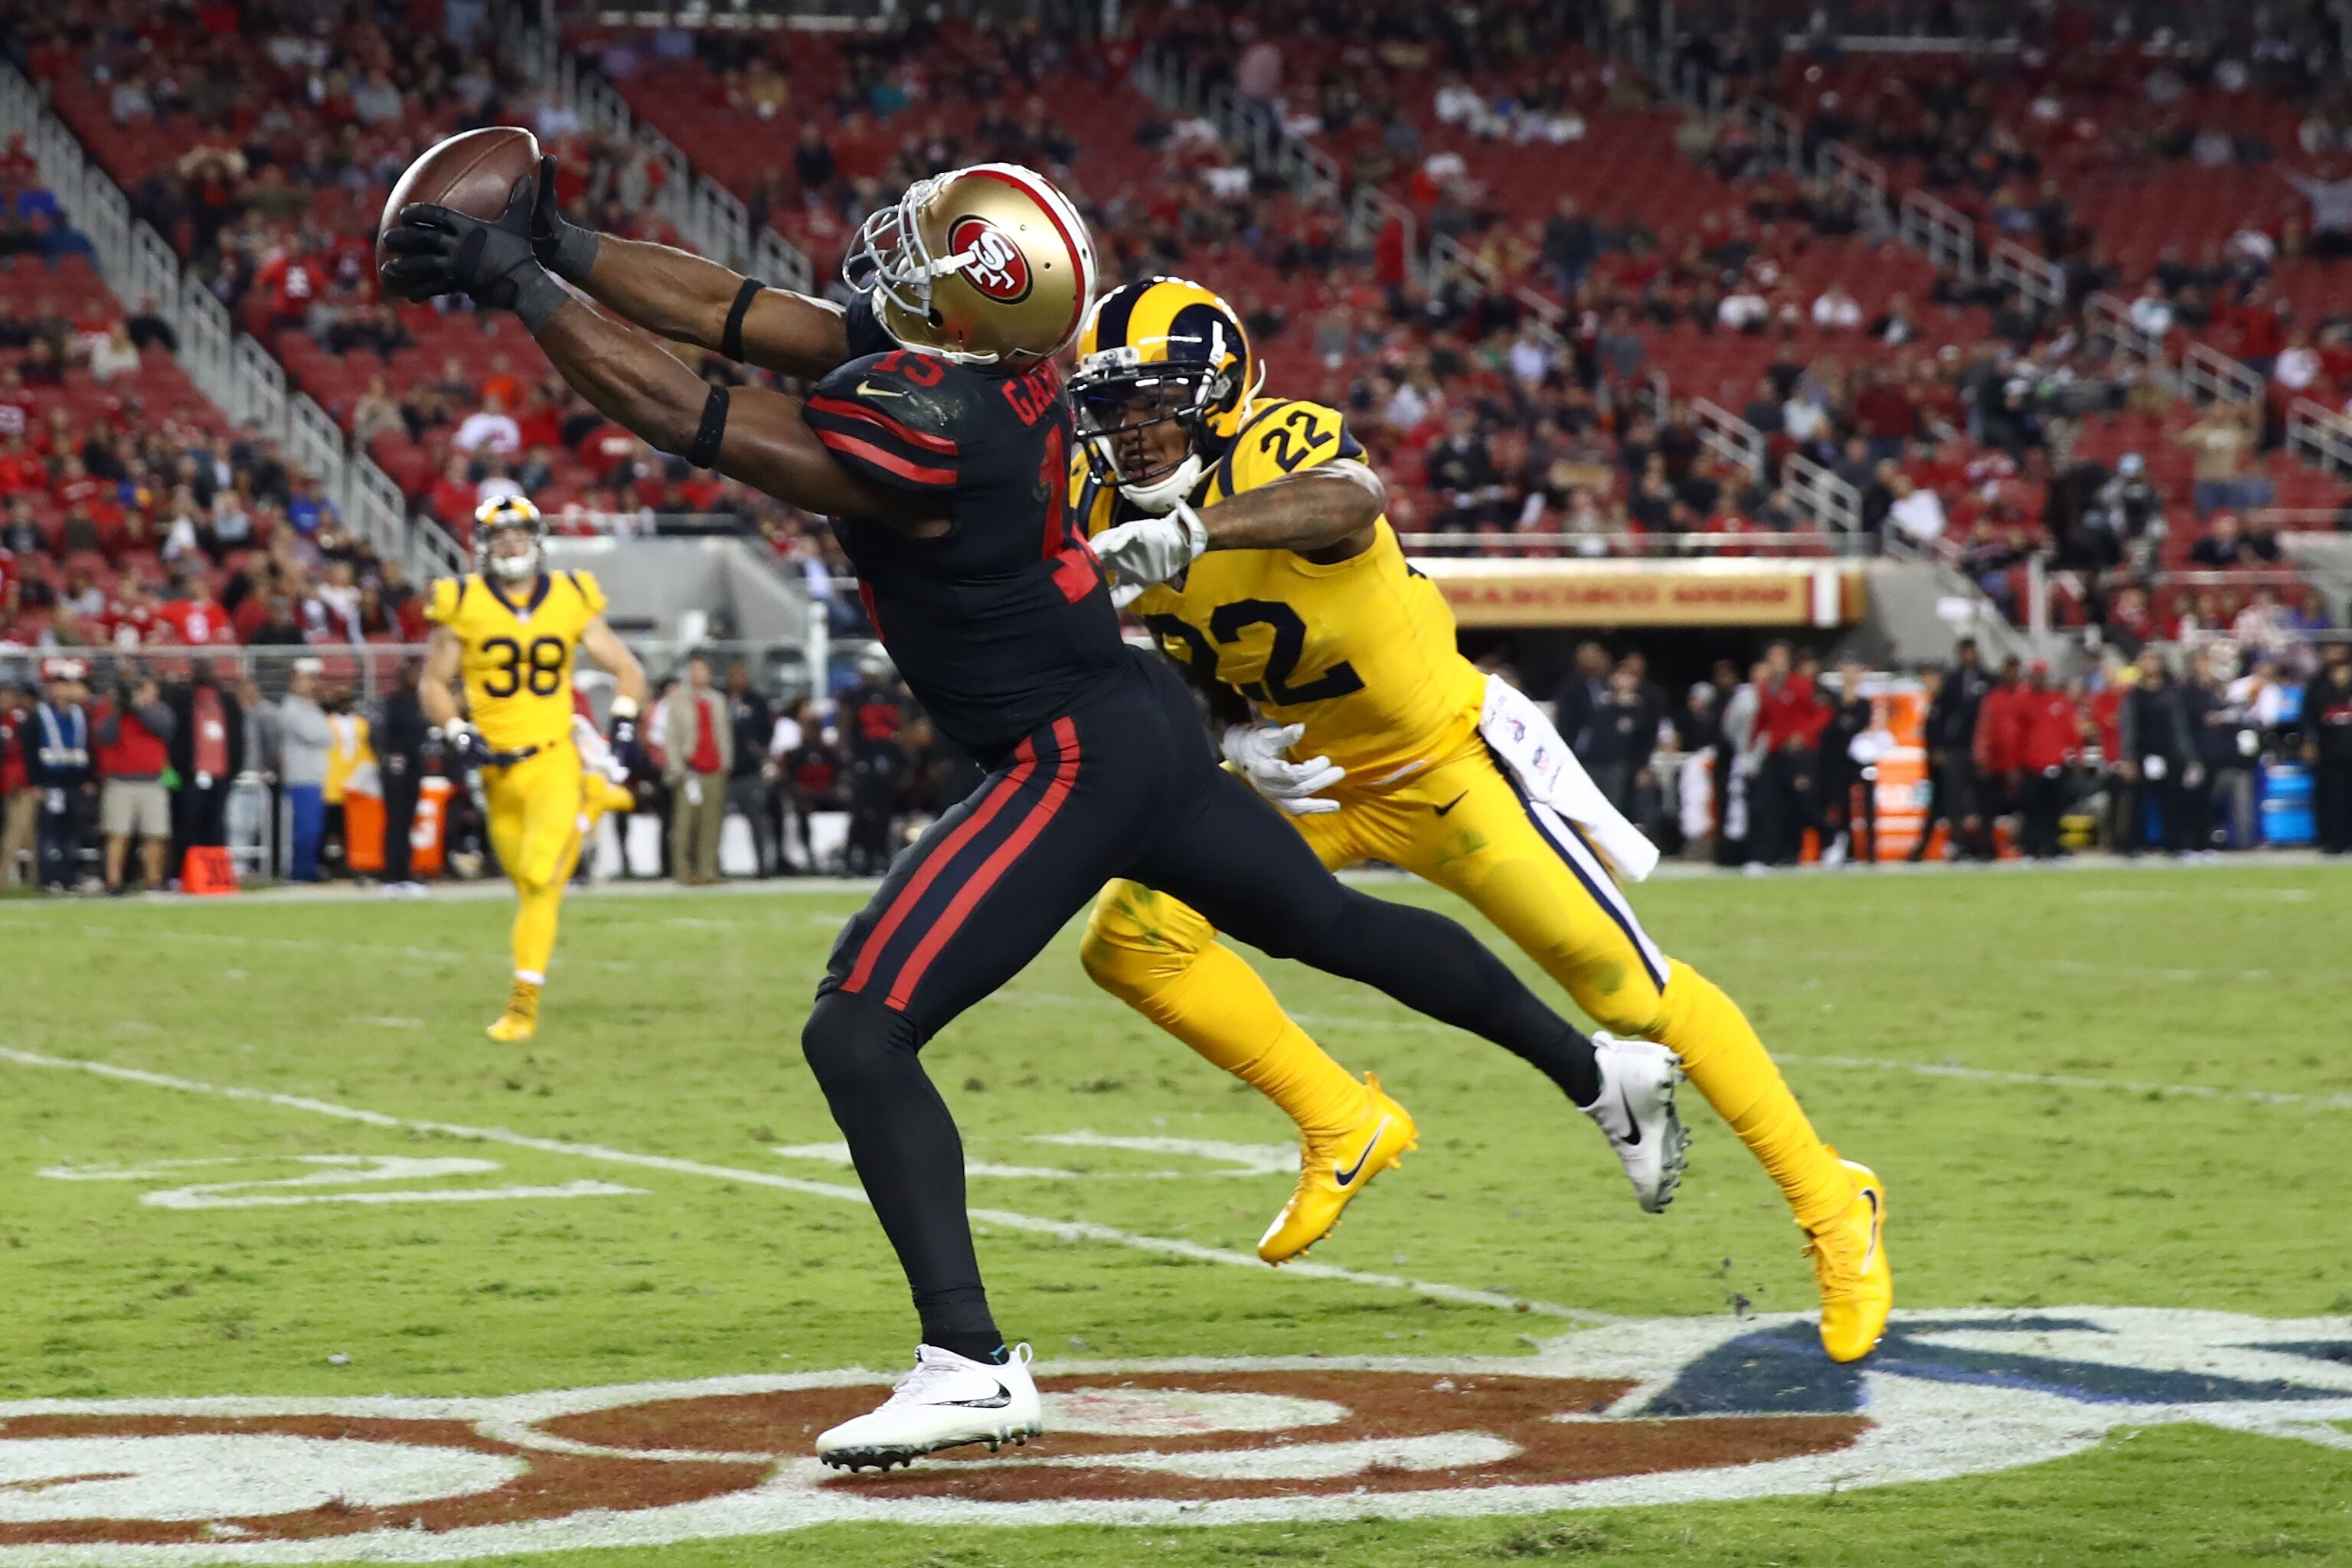 da8350d8f 49ers wide receiver Pierre Garçon out for the season with neck injury